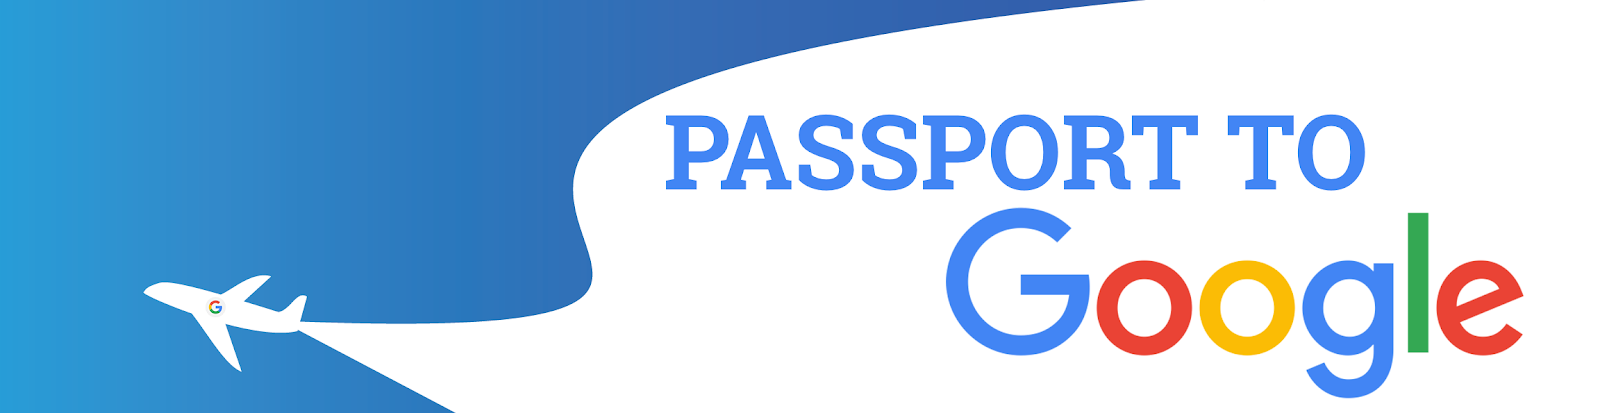 Passport to Google.png